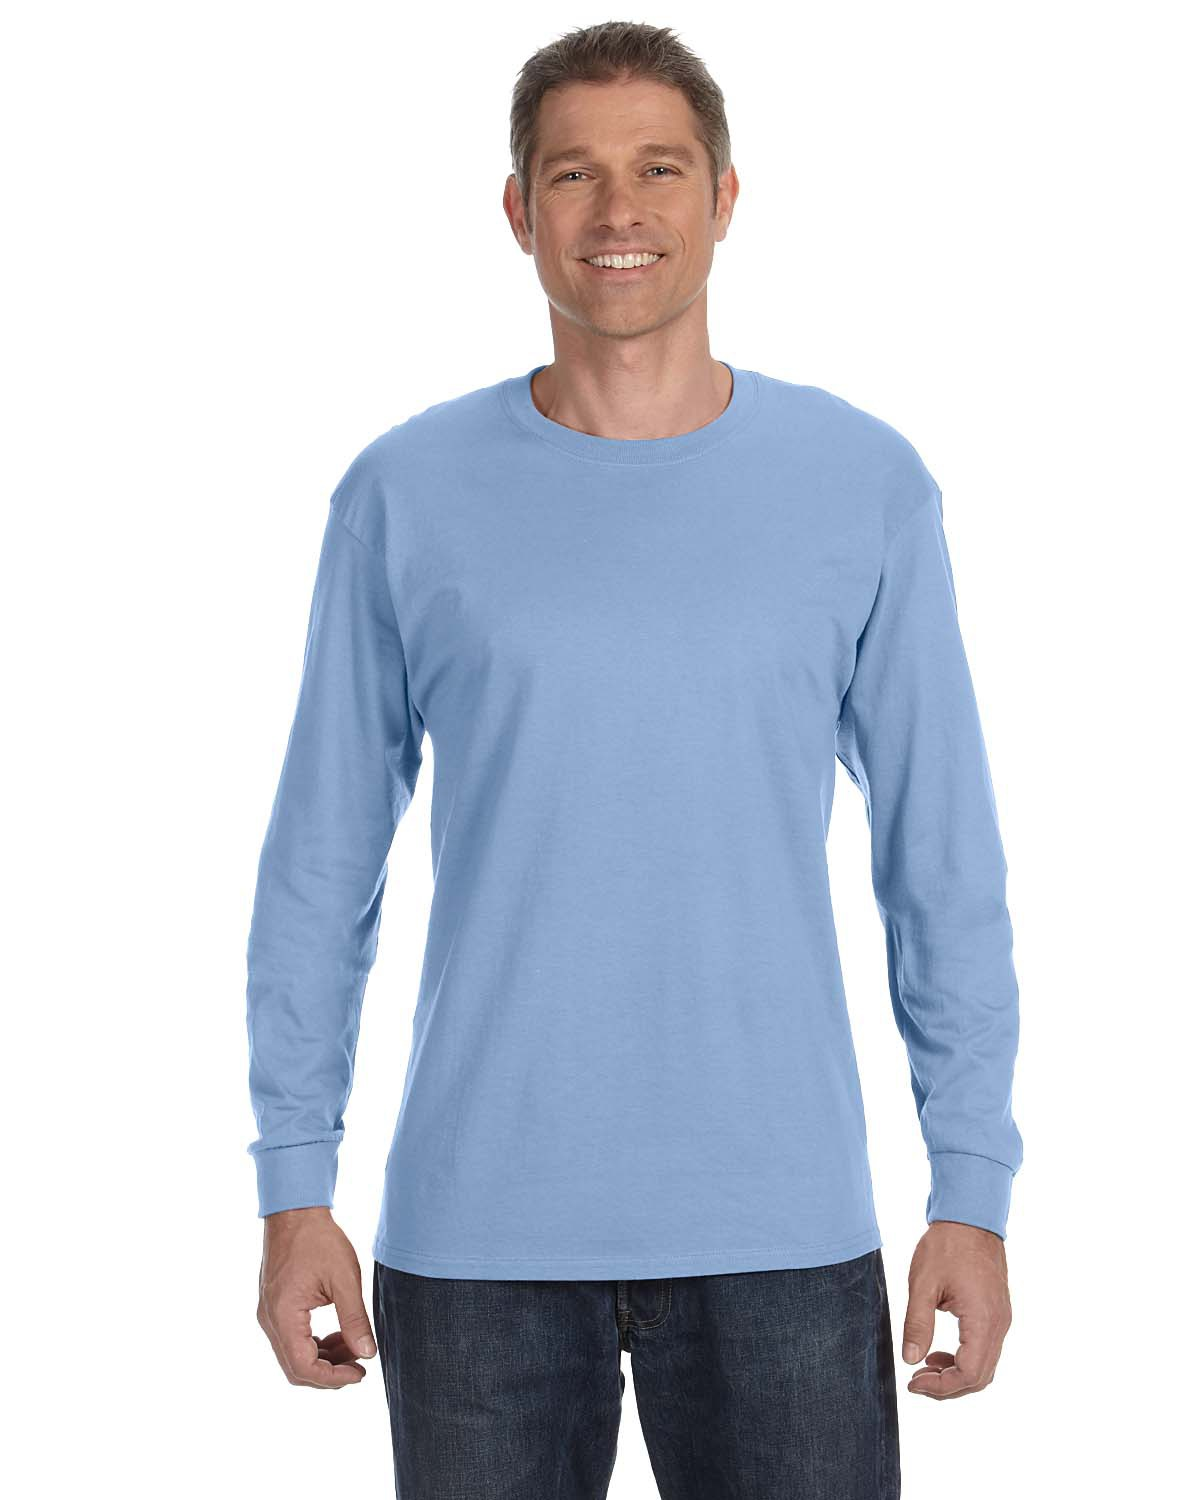 Unisex 6.1 oz. Tagless® Long-Sleeve T-Shirt